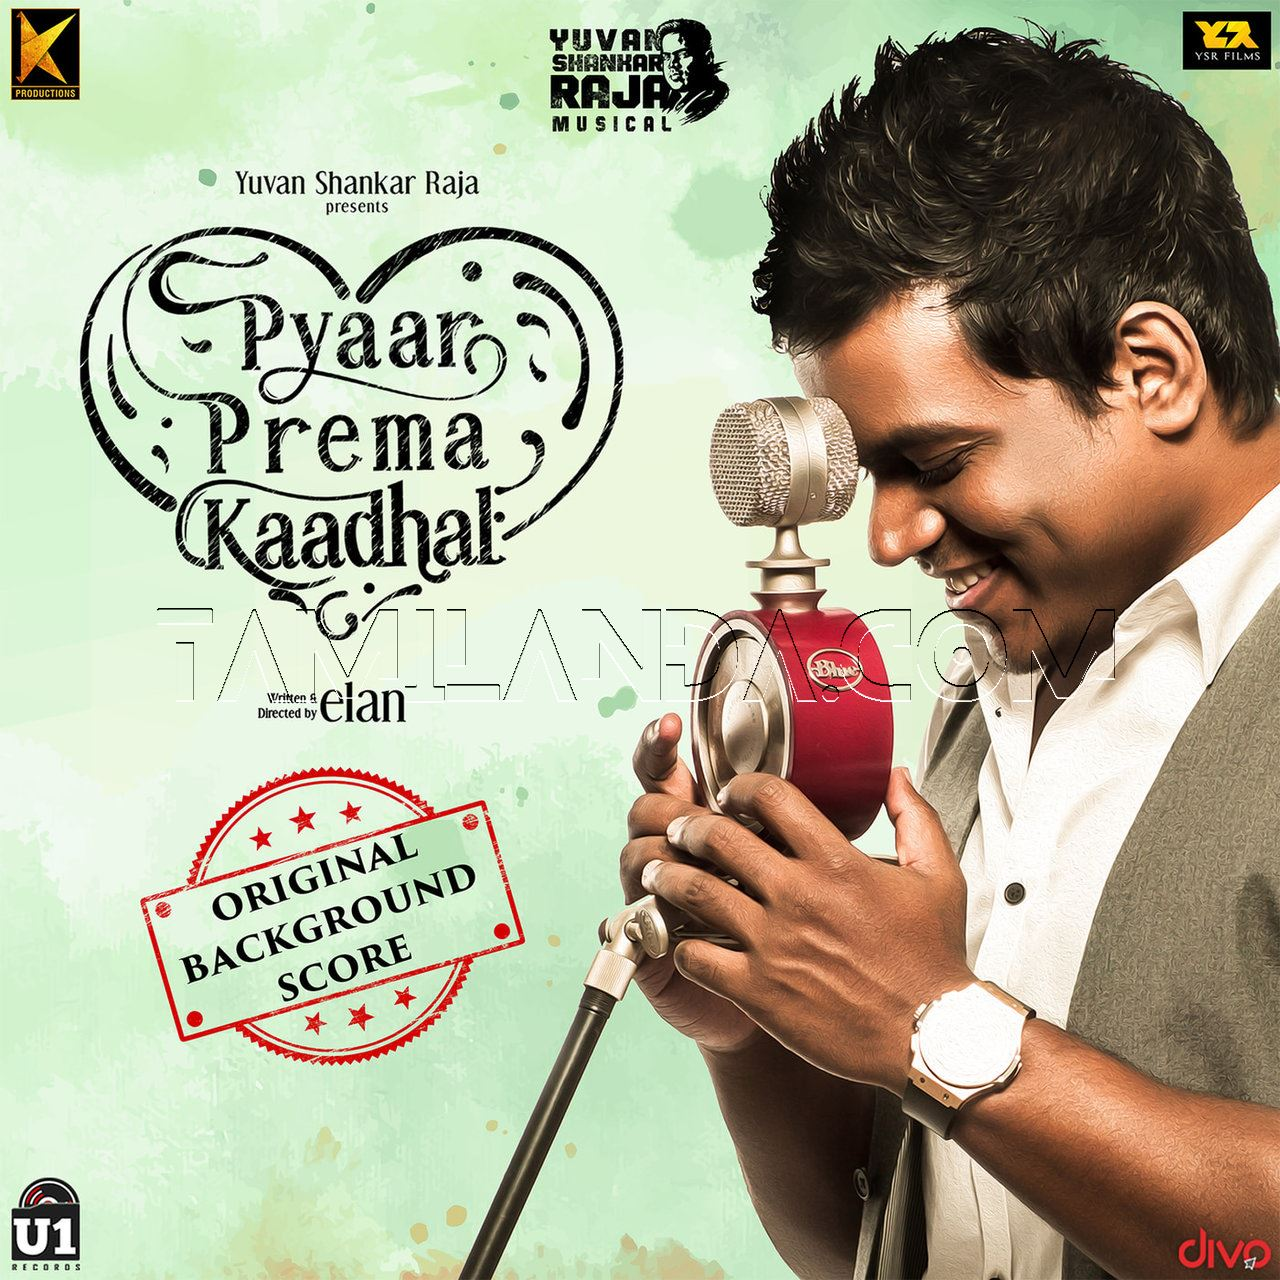 Pyaar Prema Kaadhal (Original Background Score) FLAC Album